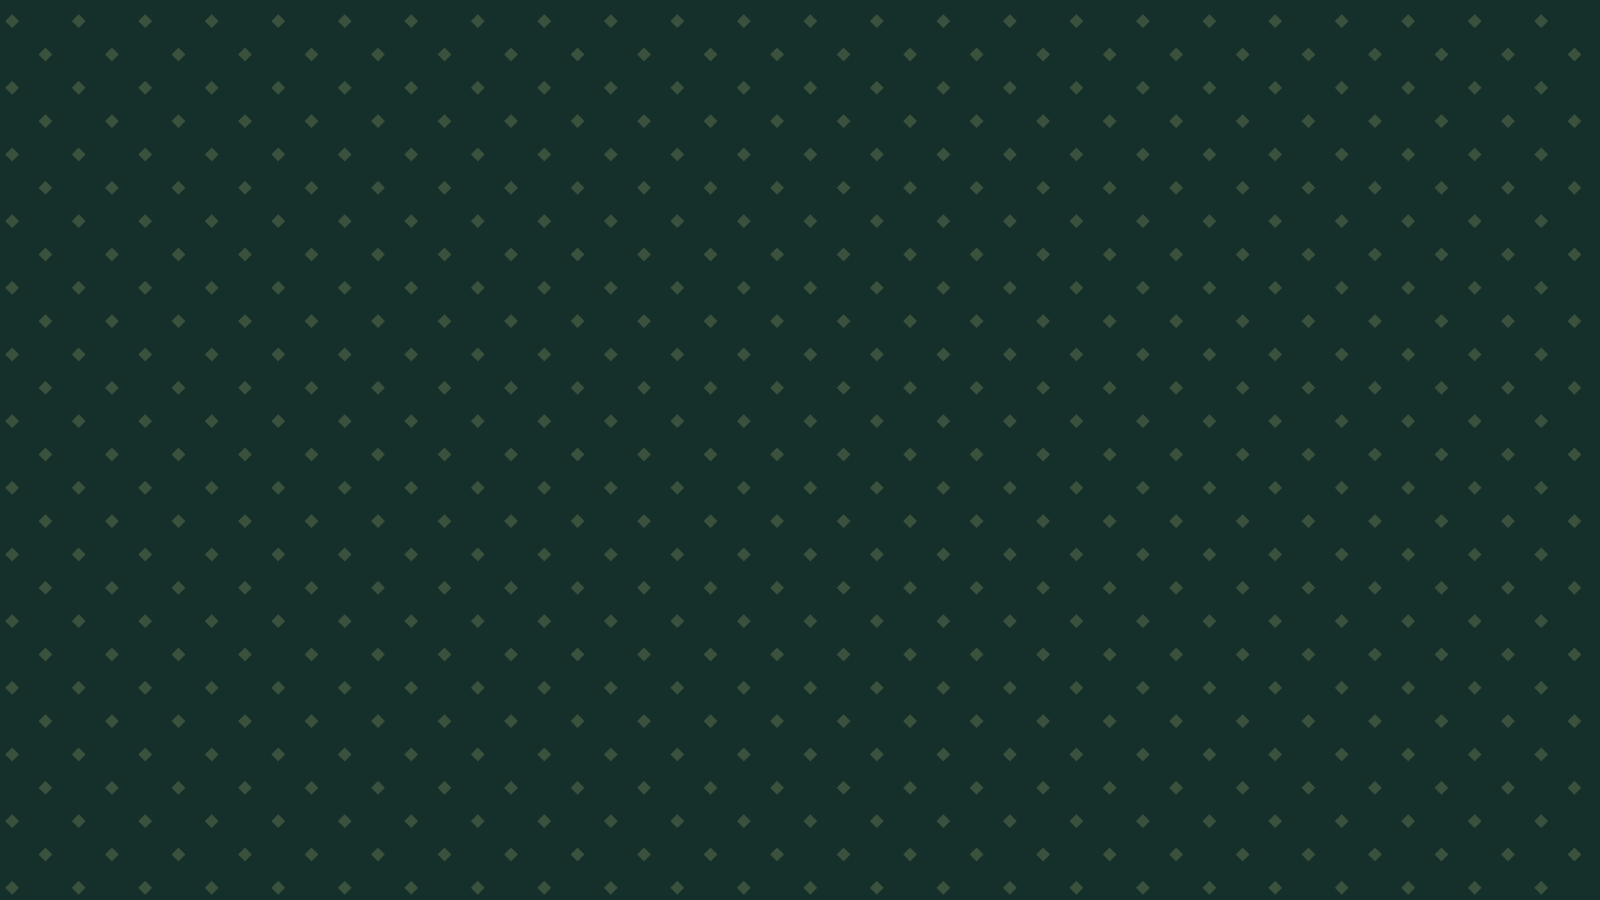 pattern_dotted_dark_green.png